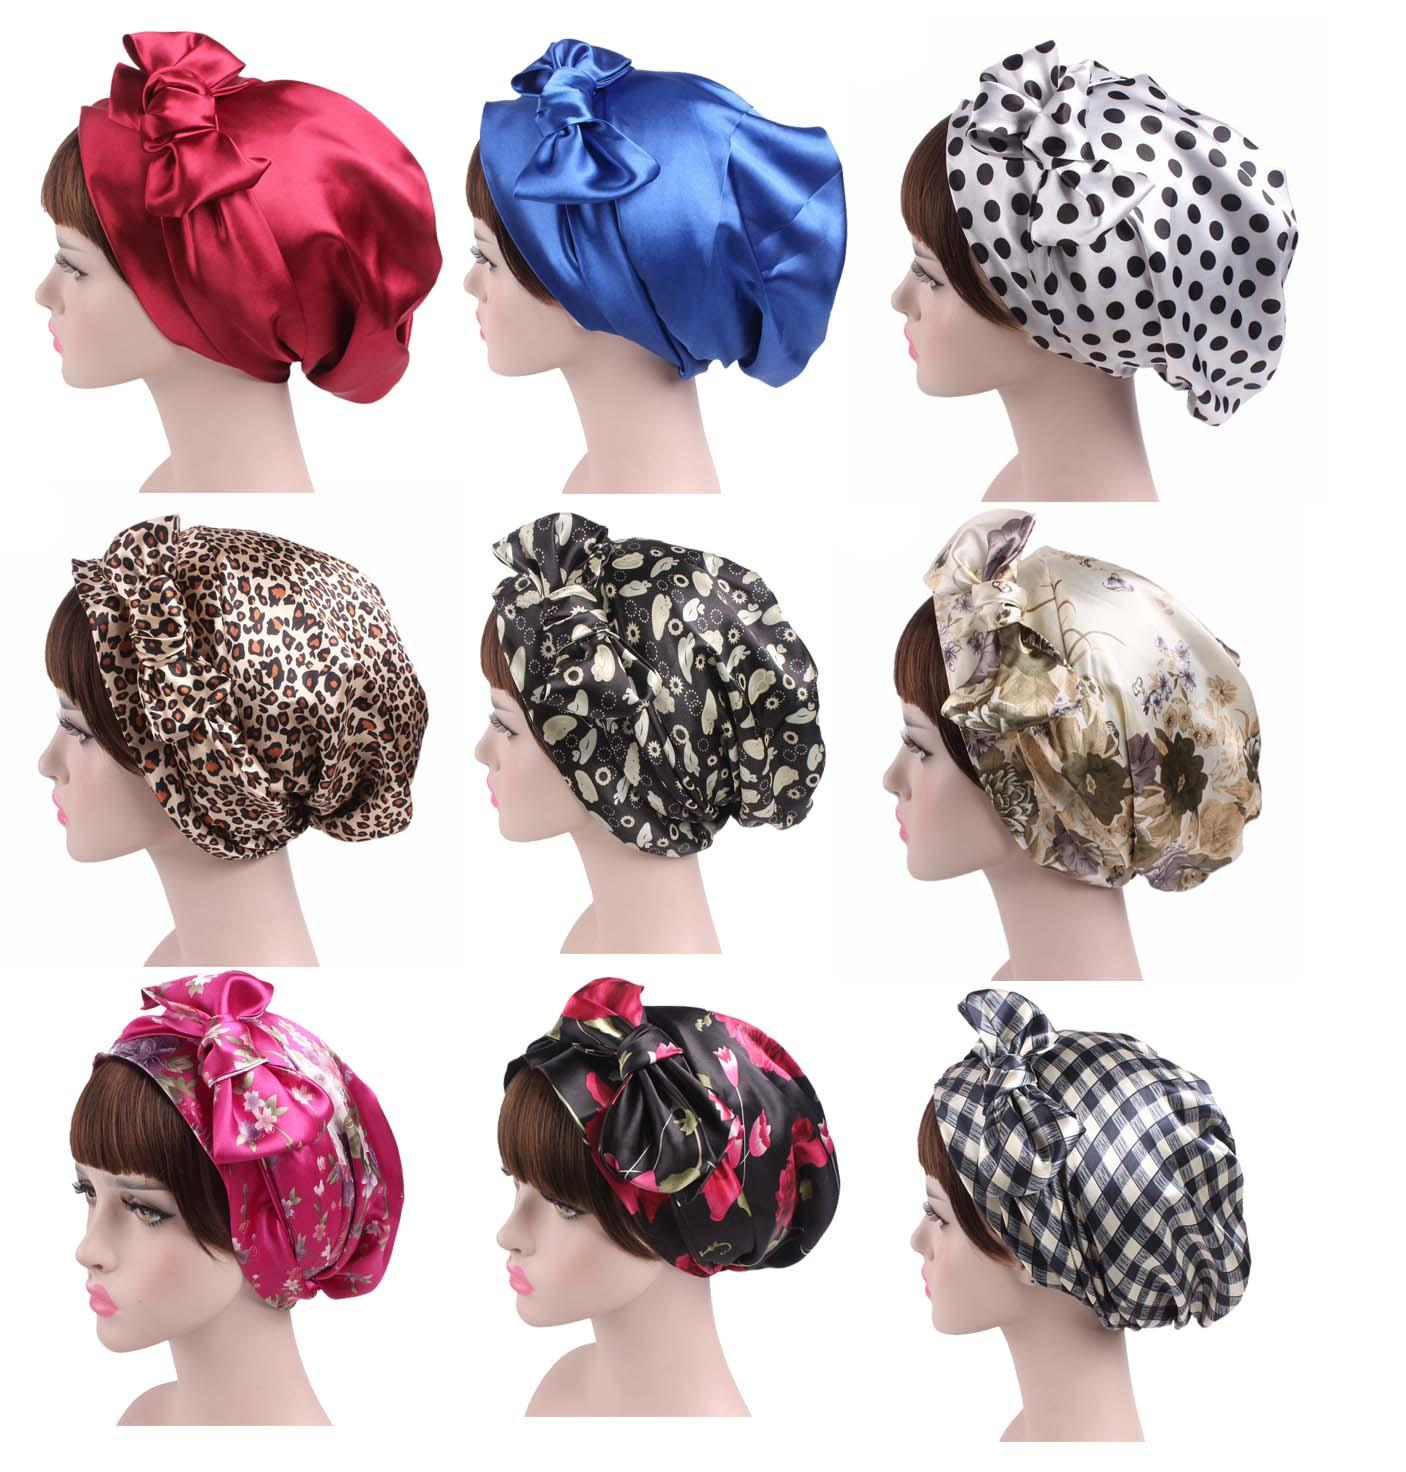 1PC Fashion Floral Headscarf Women Muslim Stretch Turban Hat Islamic Pirate Headwraps Elastic Sleeping Hat Bonnet Ladies Hijabs